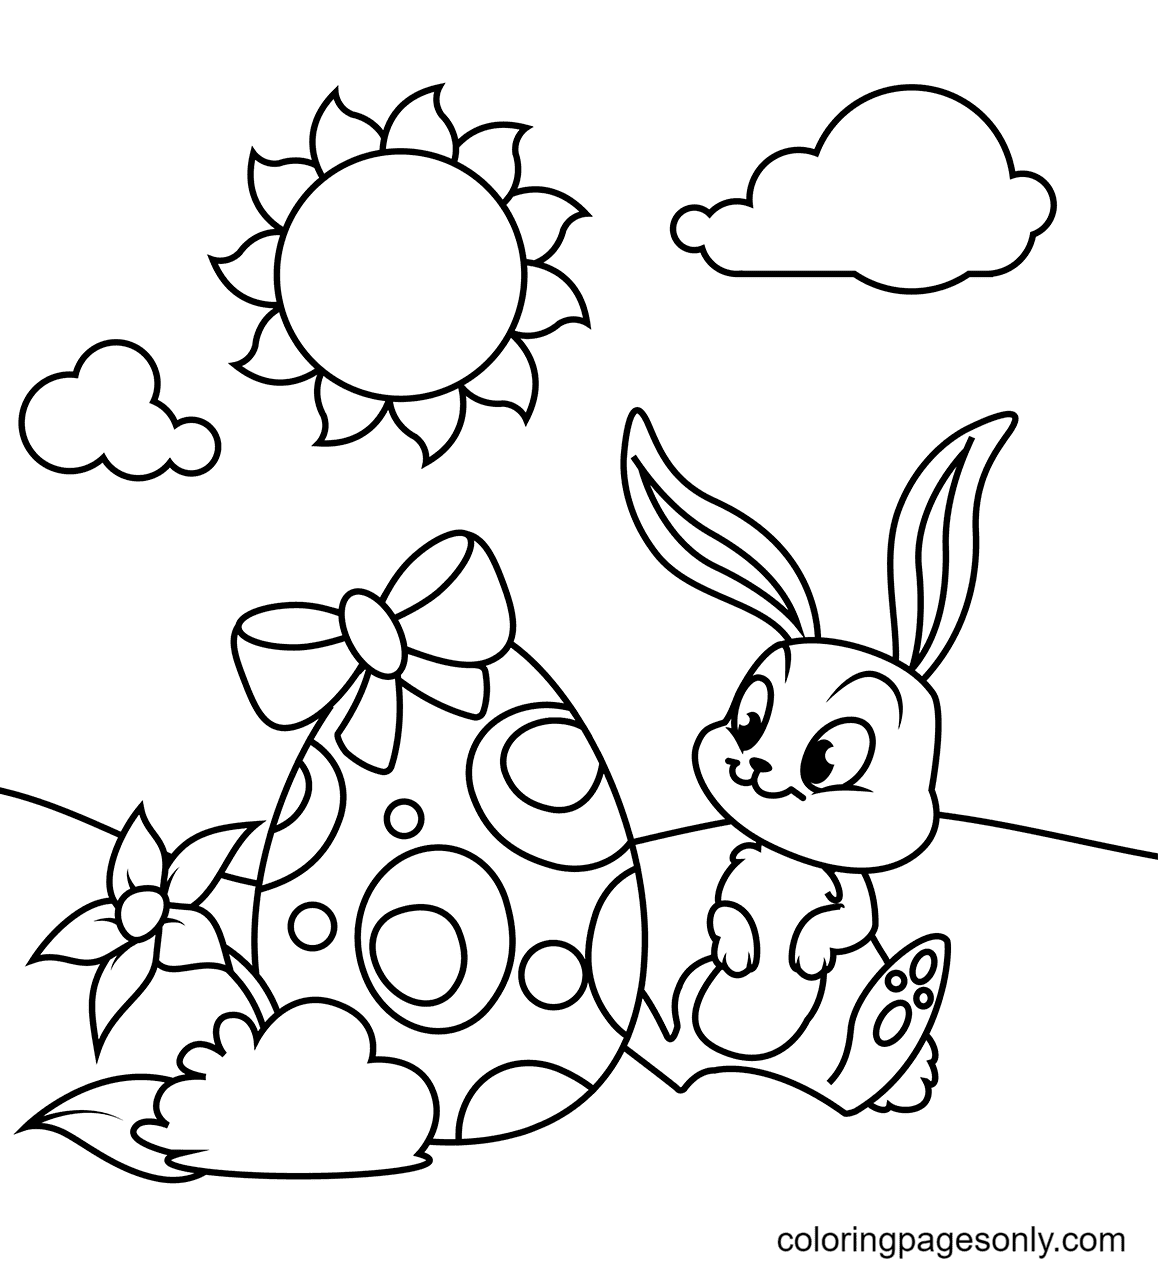 Baby Bunny with Easter Egg Coloring Page